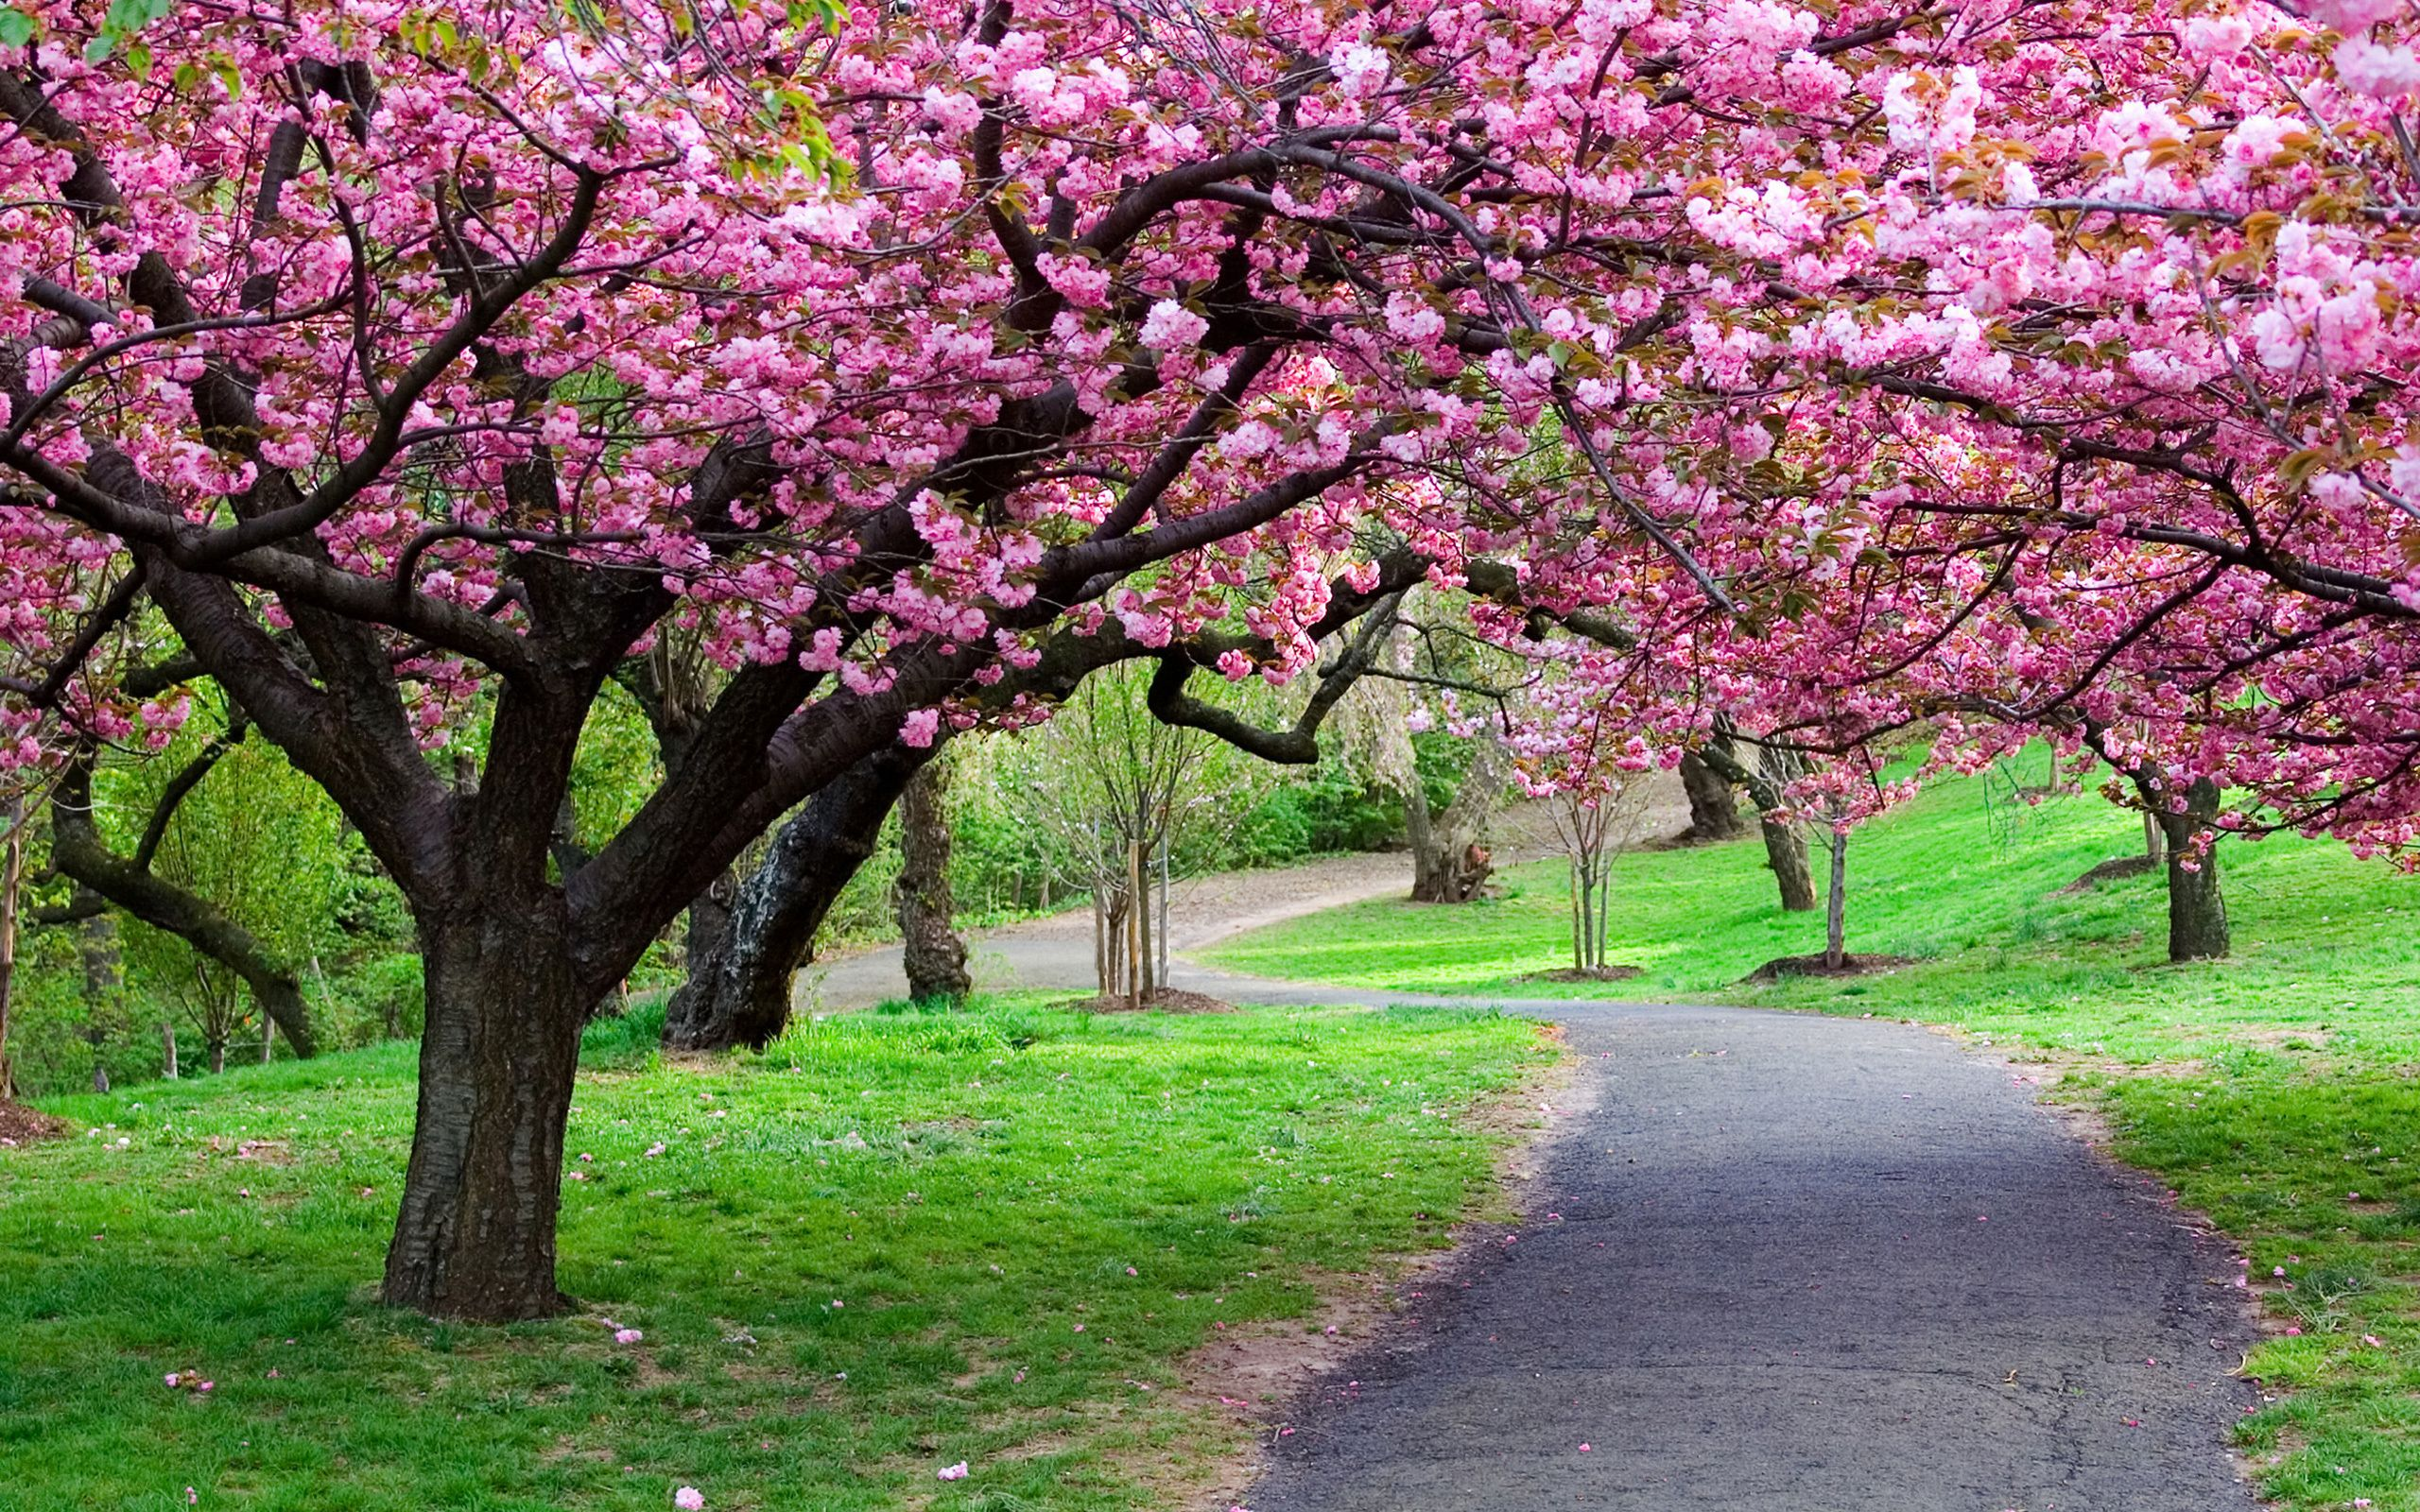 Flower Cherry Blossoms Flowers Spring Nature Kwiaty Wini Wallpaper And Backgrounds Cherry Blossom Flowers Cherry Blossom Wallpaper Flowers